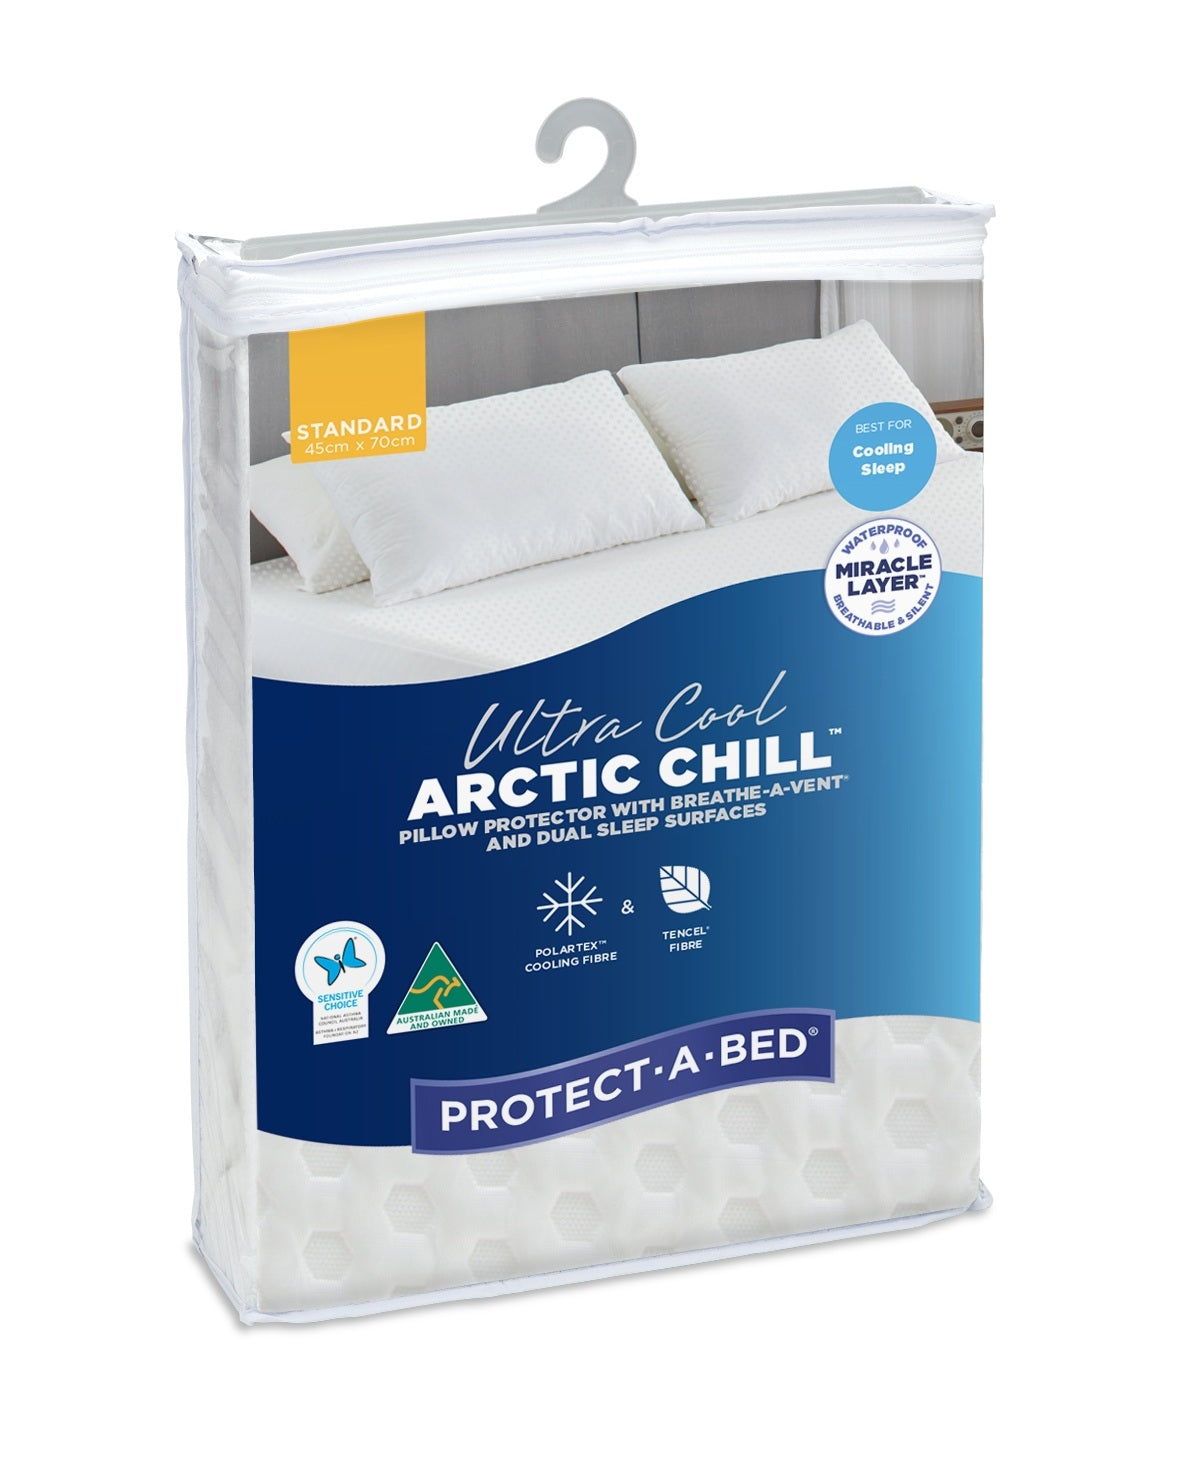 Protect-a-Bed Arctic Chill Pillow Protector